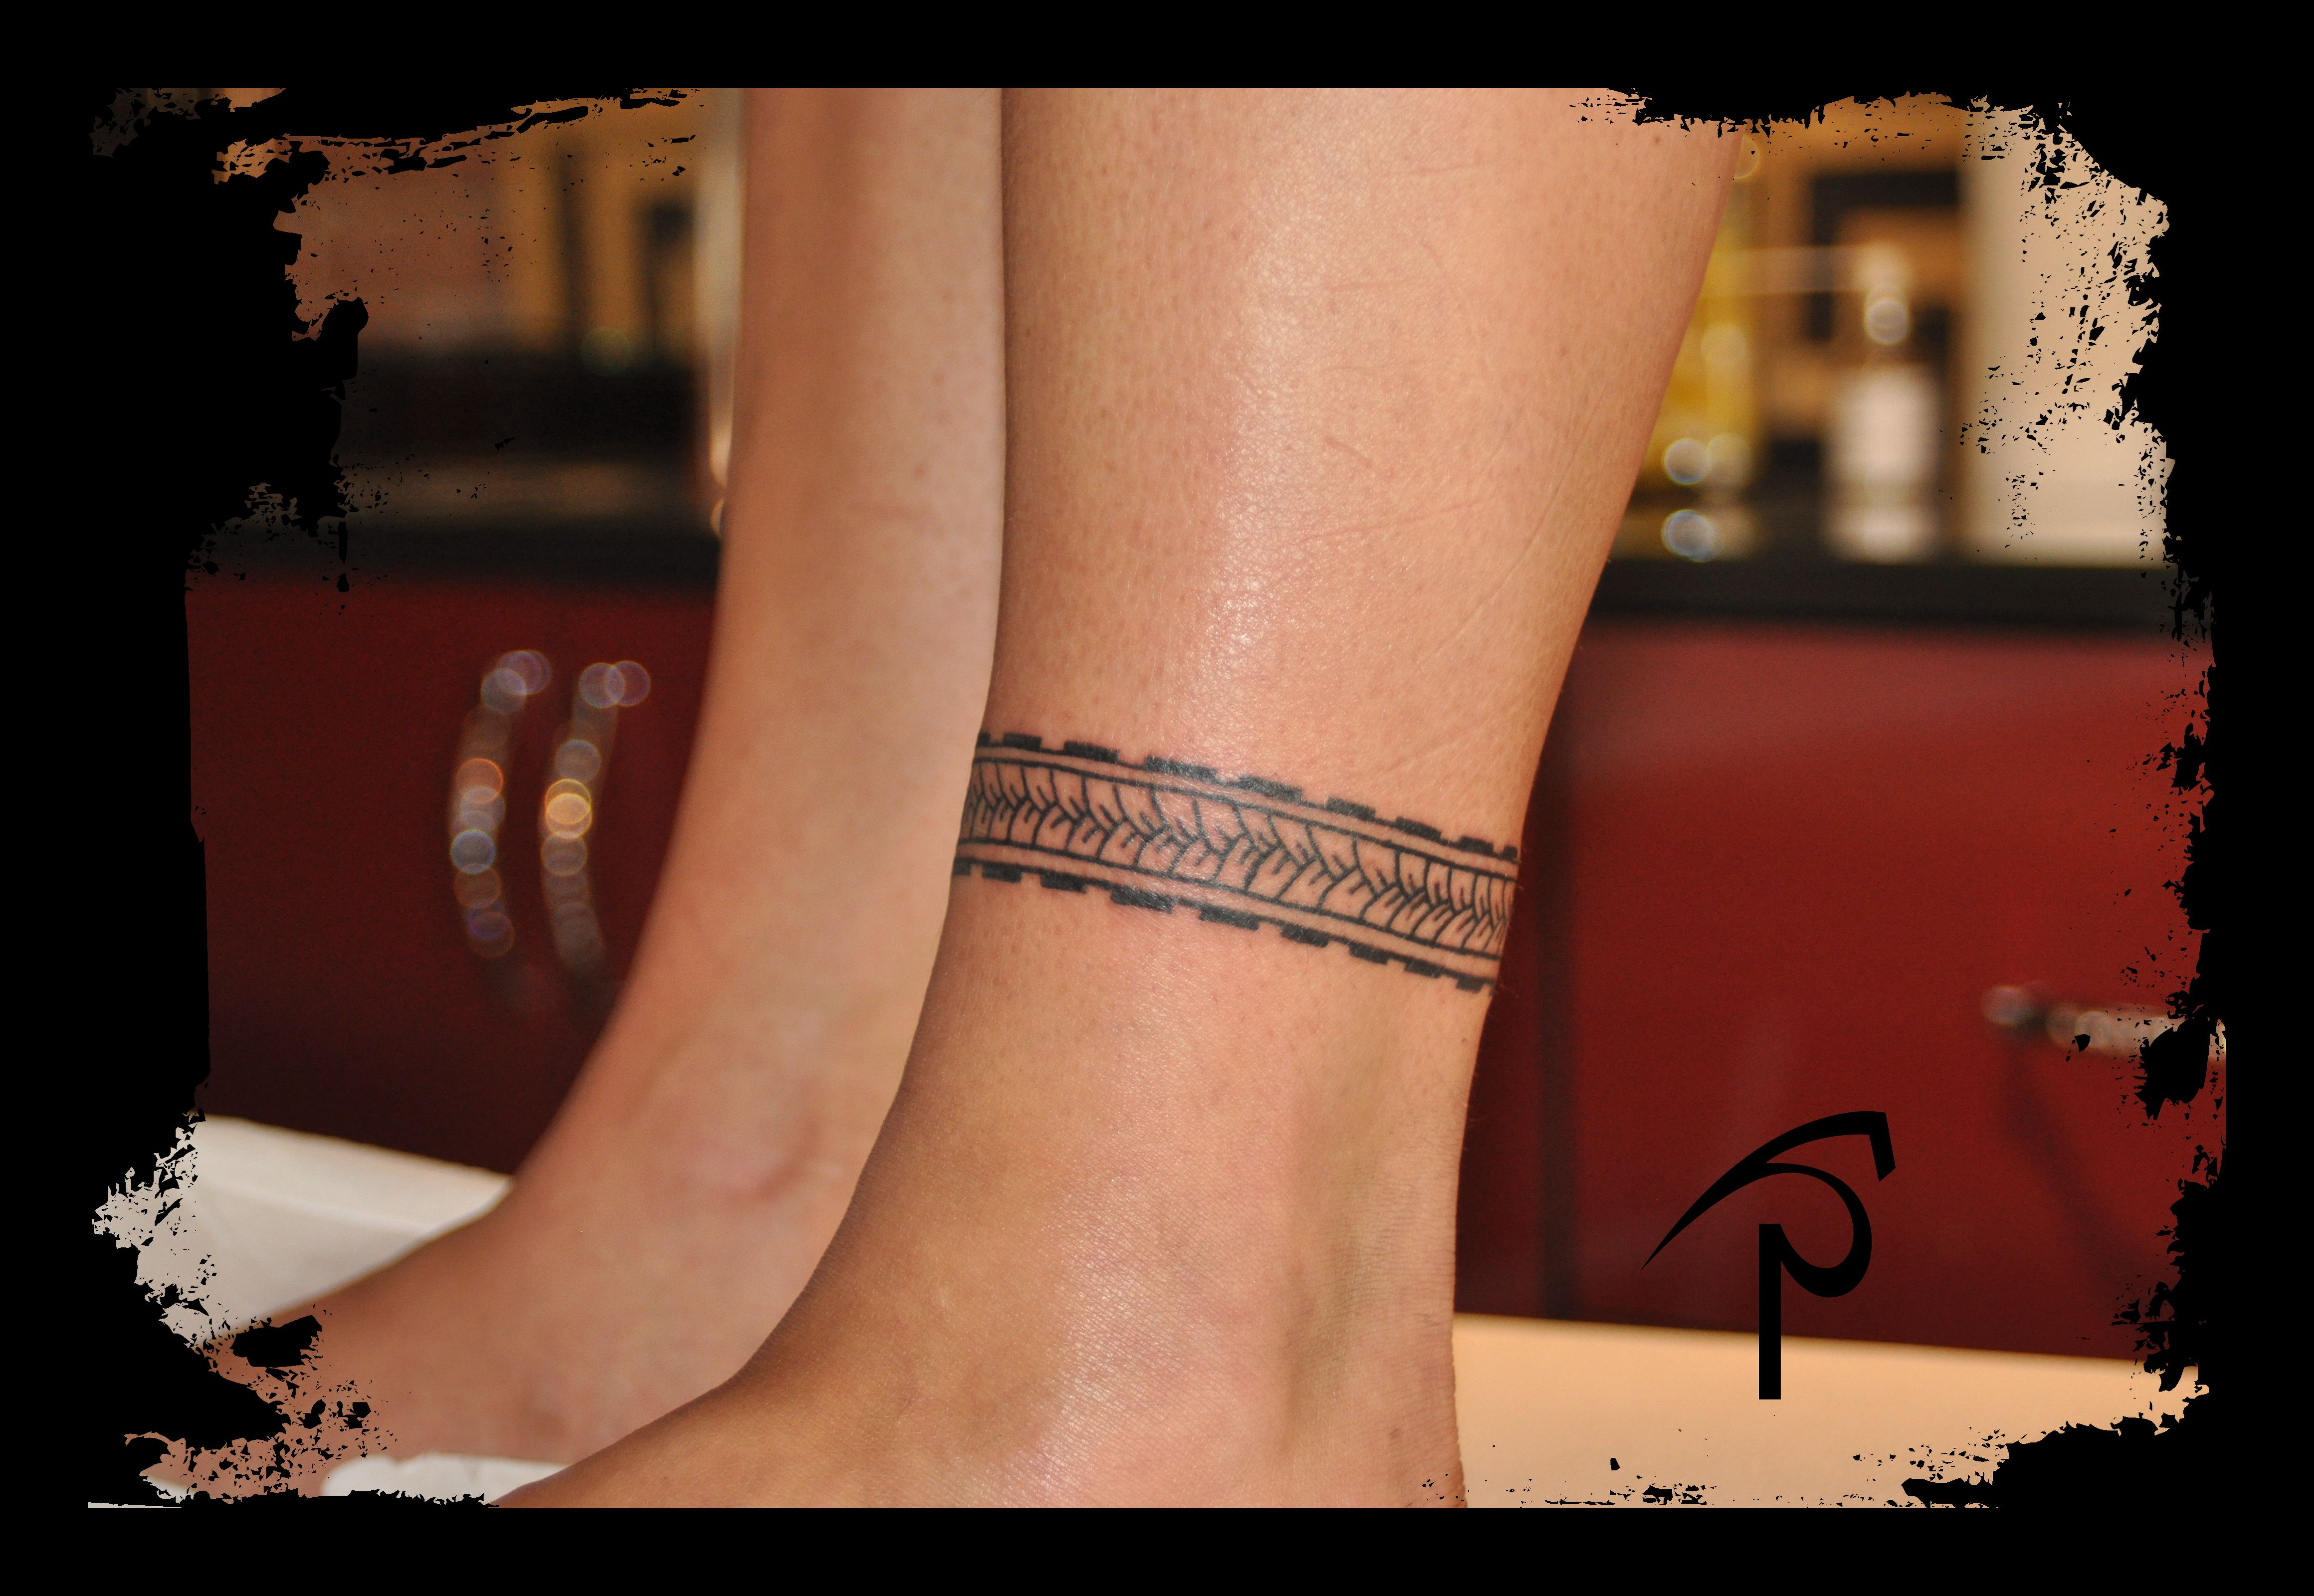 Polynesian Ankle Tattoo Band Leg Band Tattoos Ankle Tattoo Ankle Tattoos